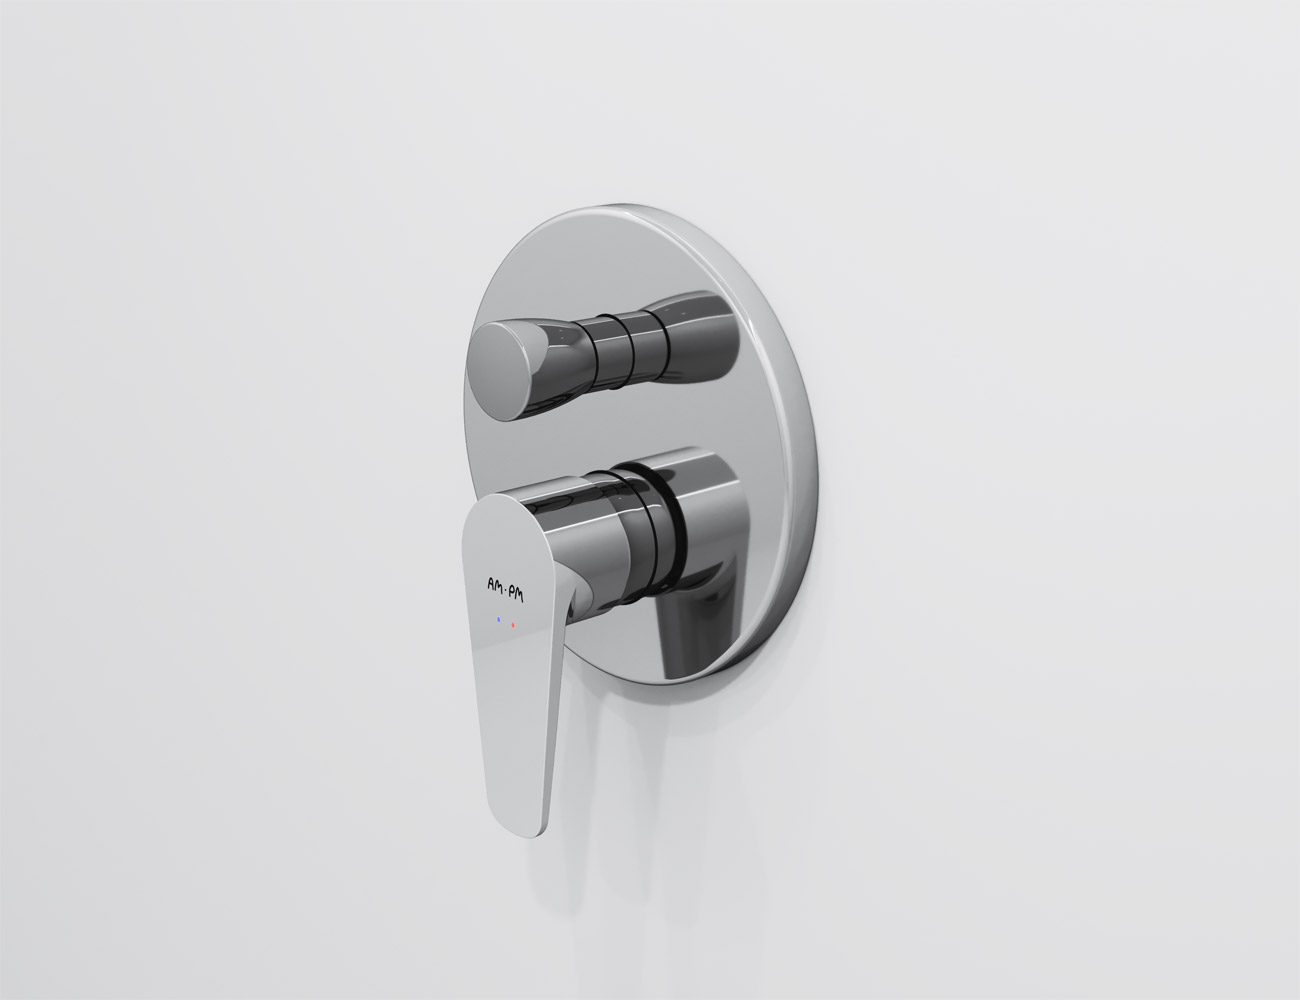 F5040000 Thermostat-Duscharmatur